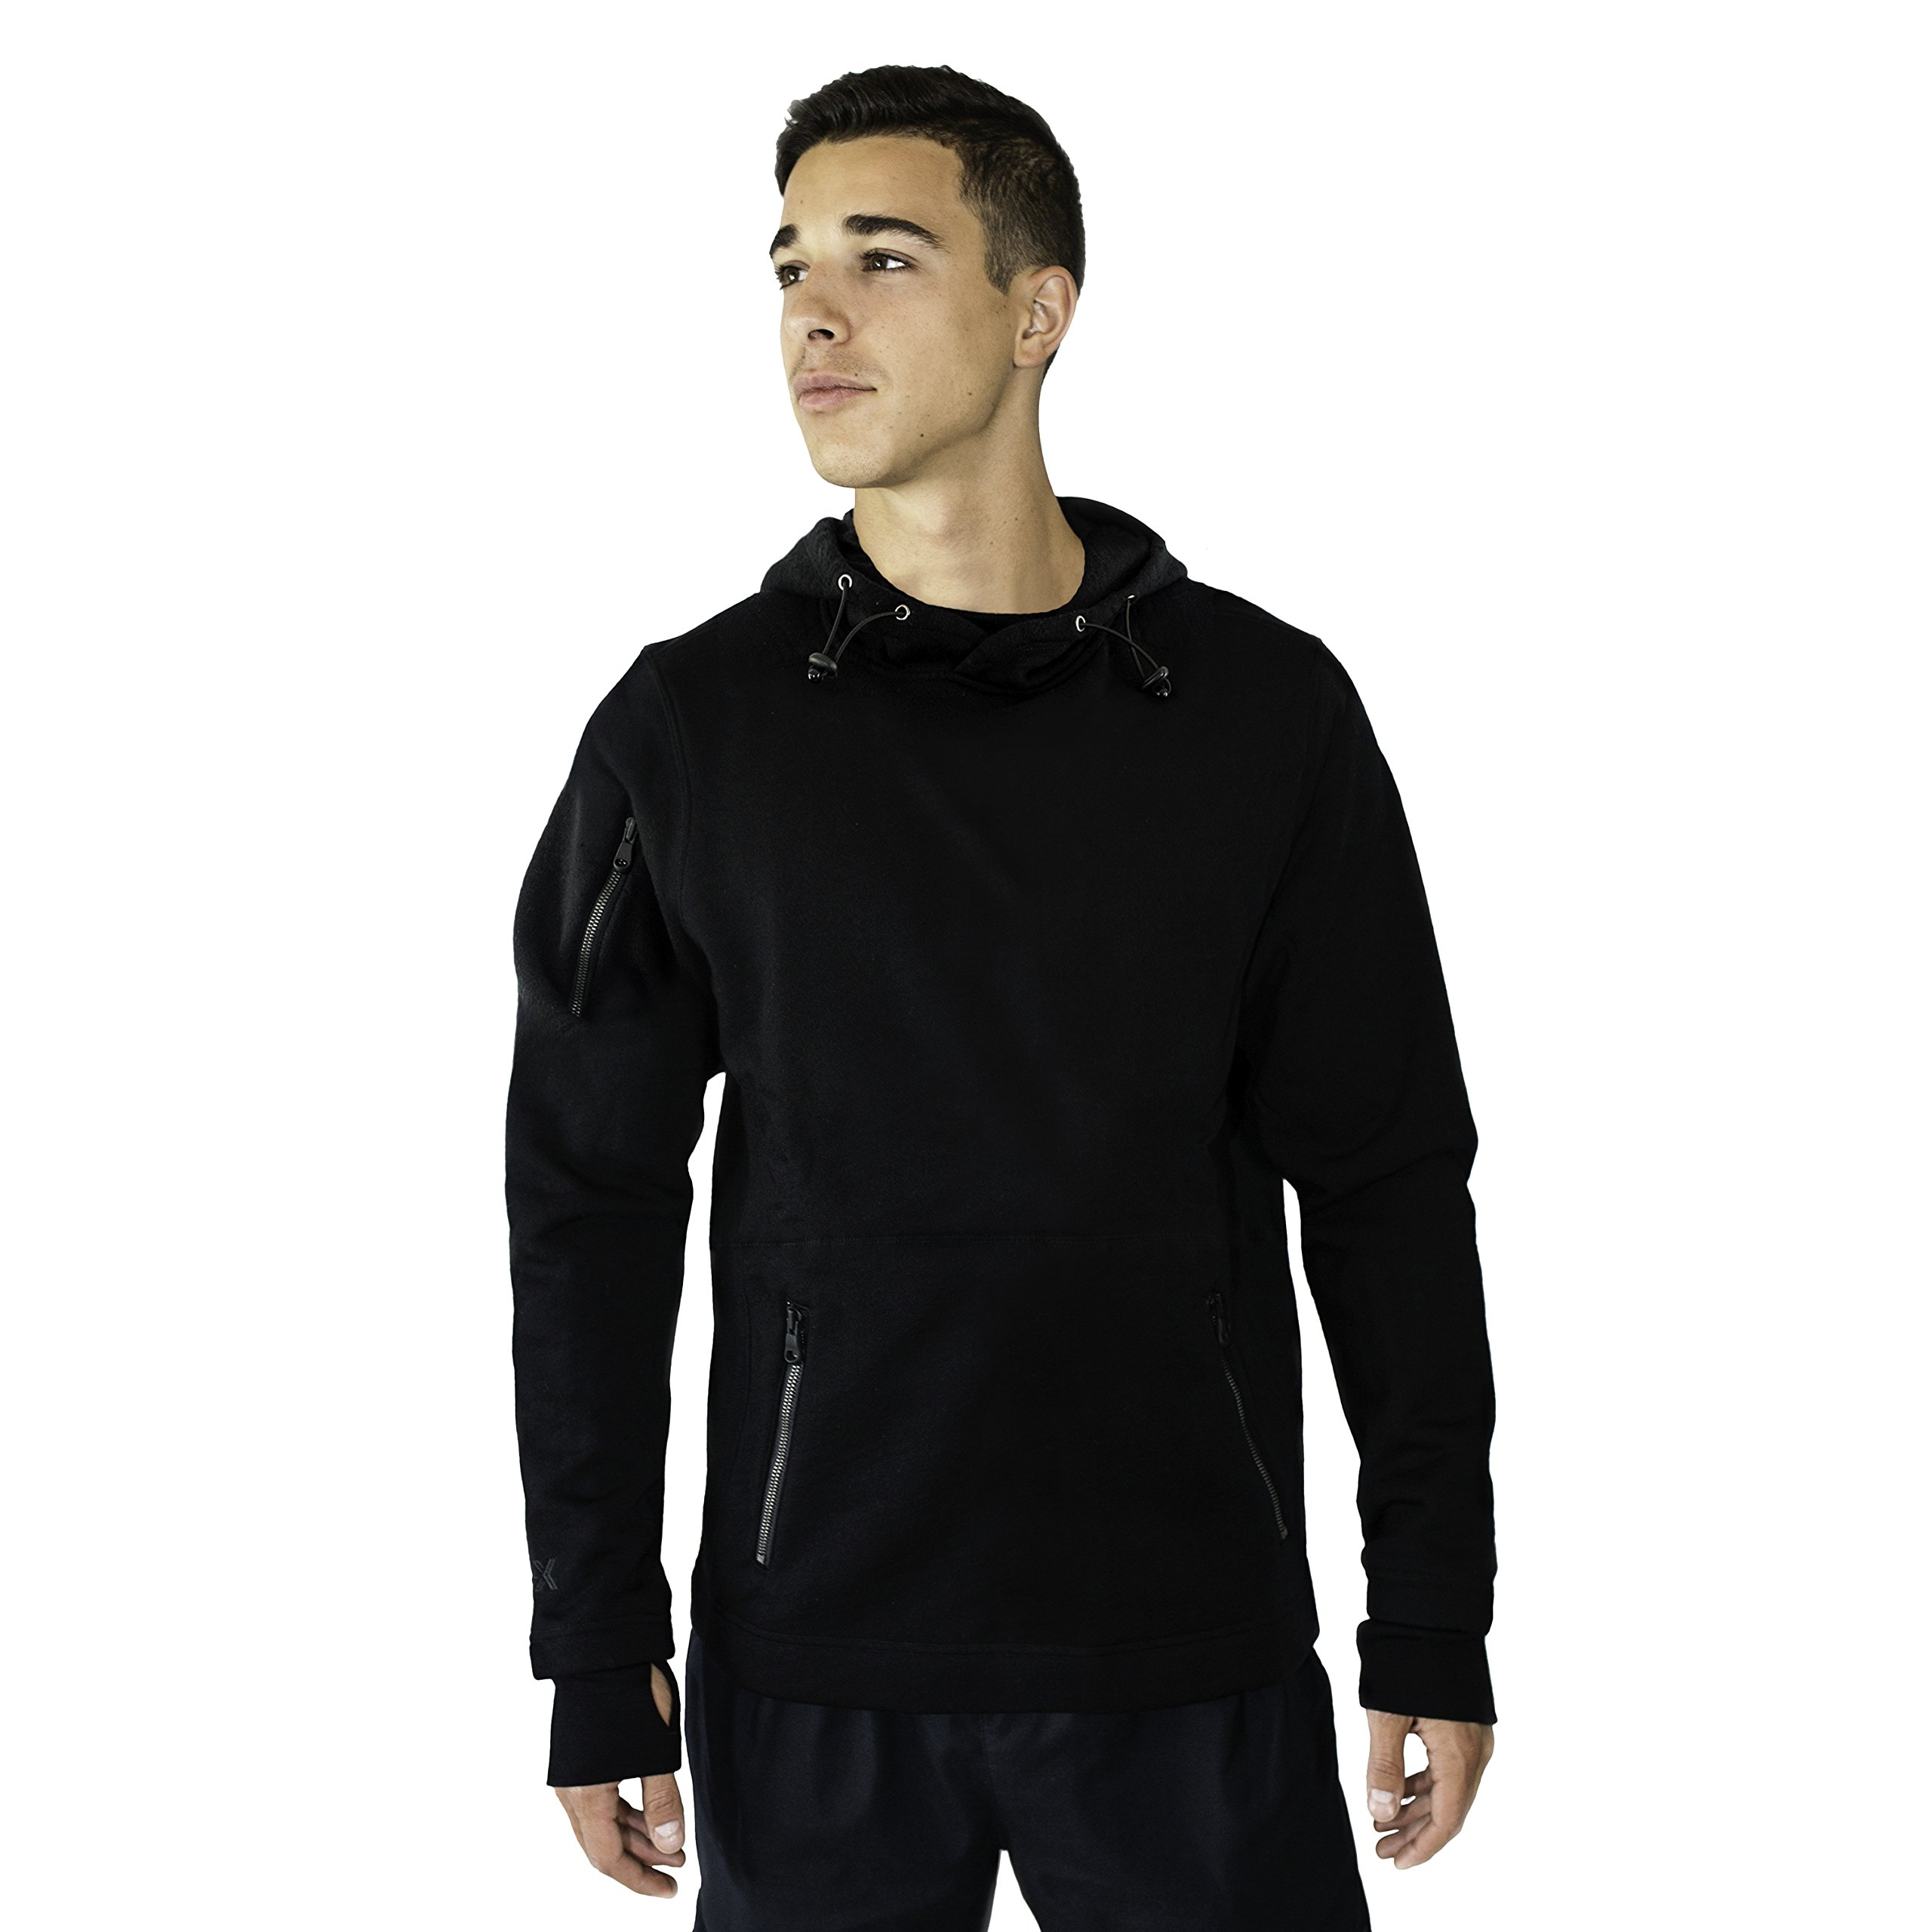 WoolX X712 Mens Grizzly Pull Over Jacket - Black - LRG